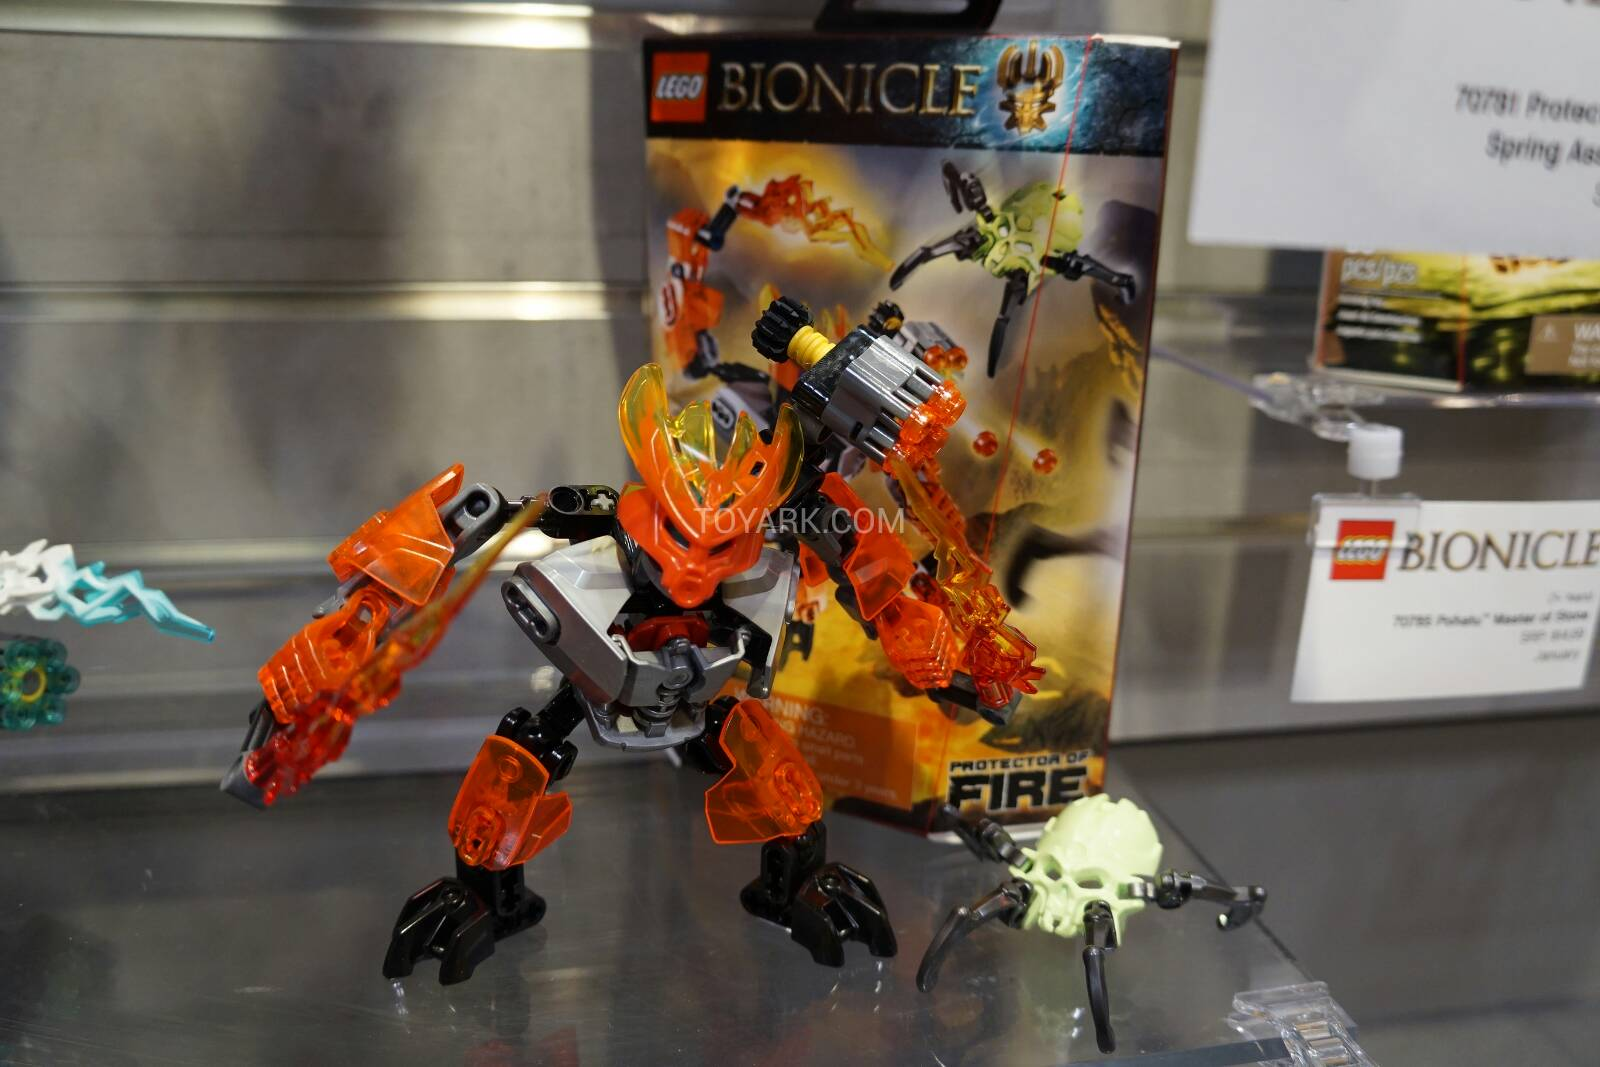 LEGO Bionicle From Toy Fair 2015 - The Toyark - News